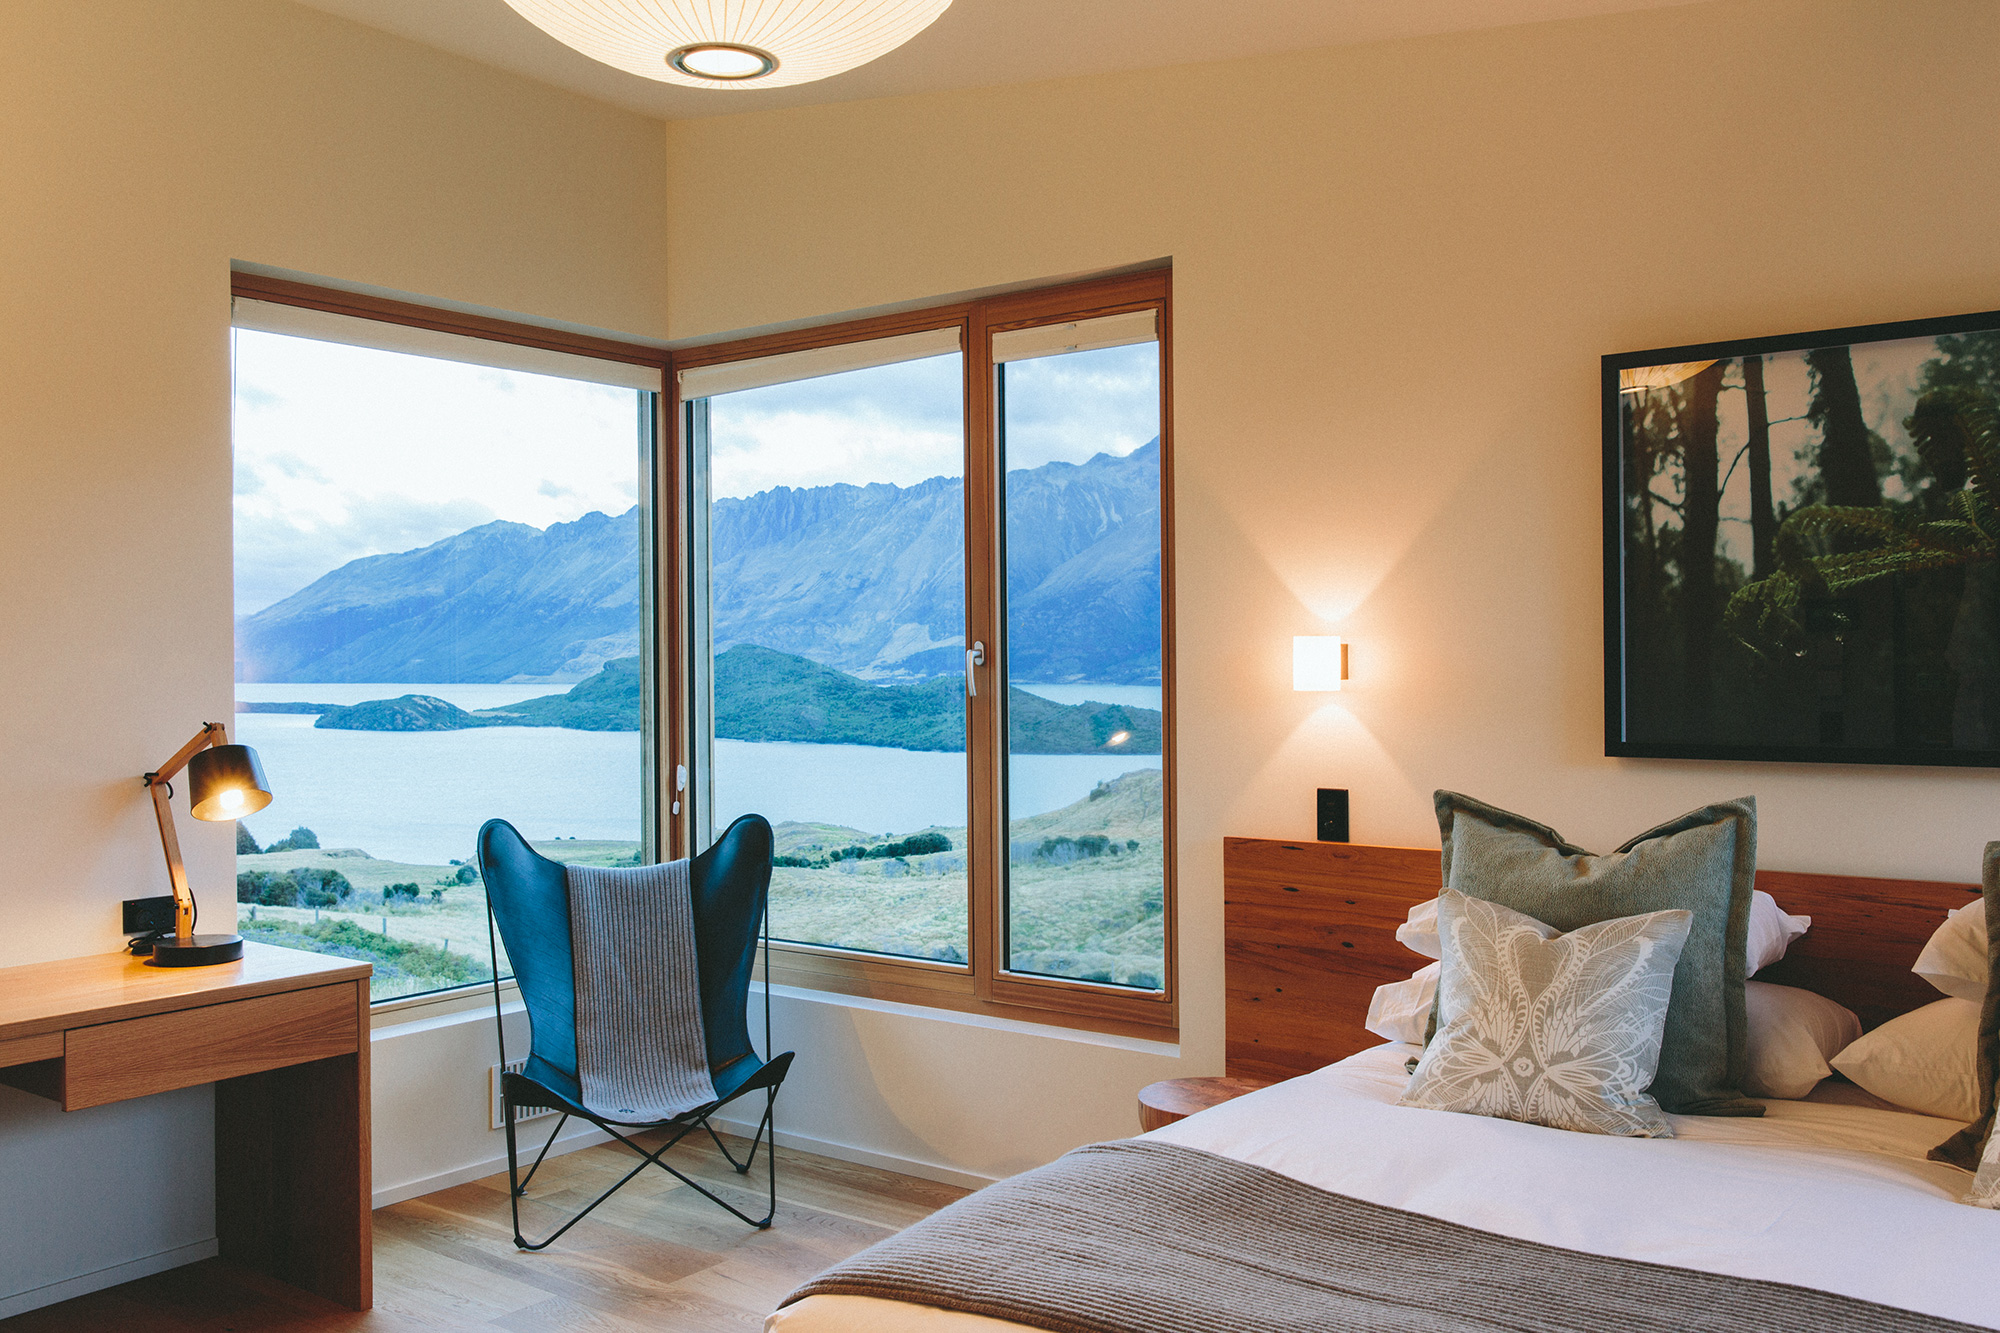 A bedroom setting with big windows looking out at a mountain view